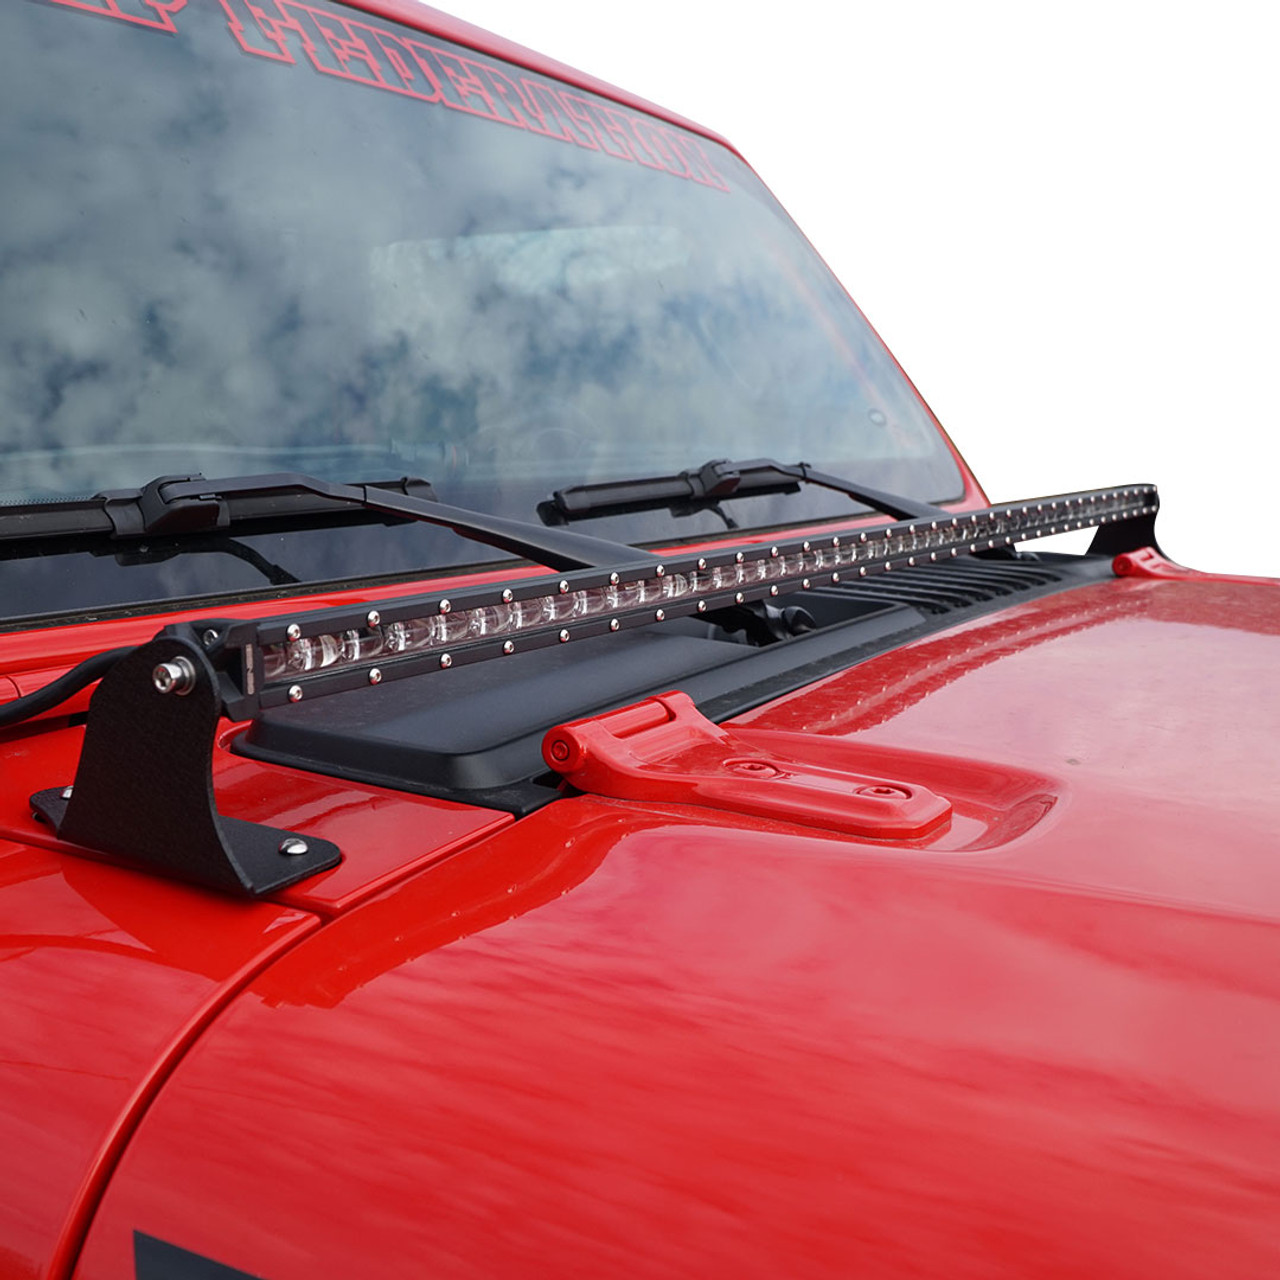 hight resolution of wire harness on jeep jk hood wiring diagrams posts wire harness on jeep jk hood